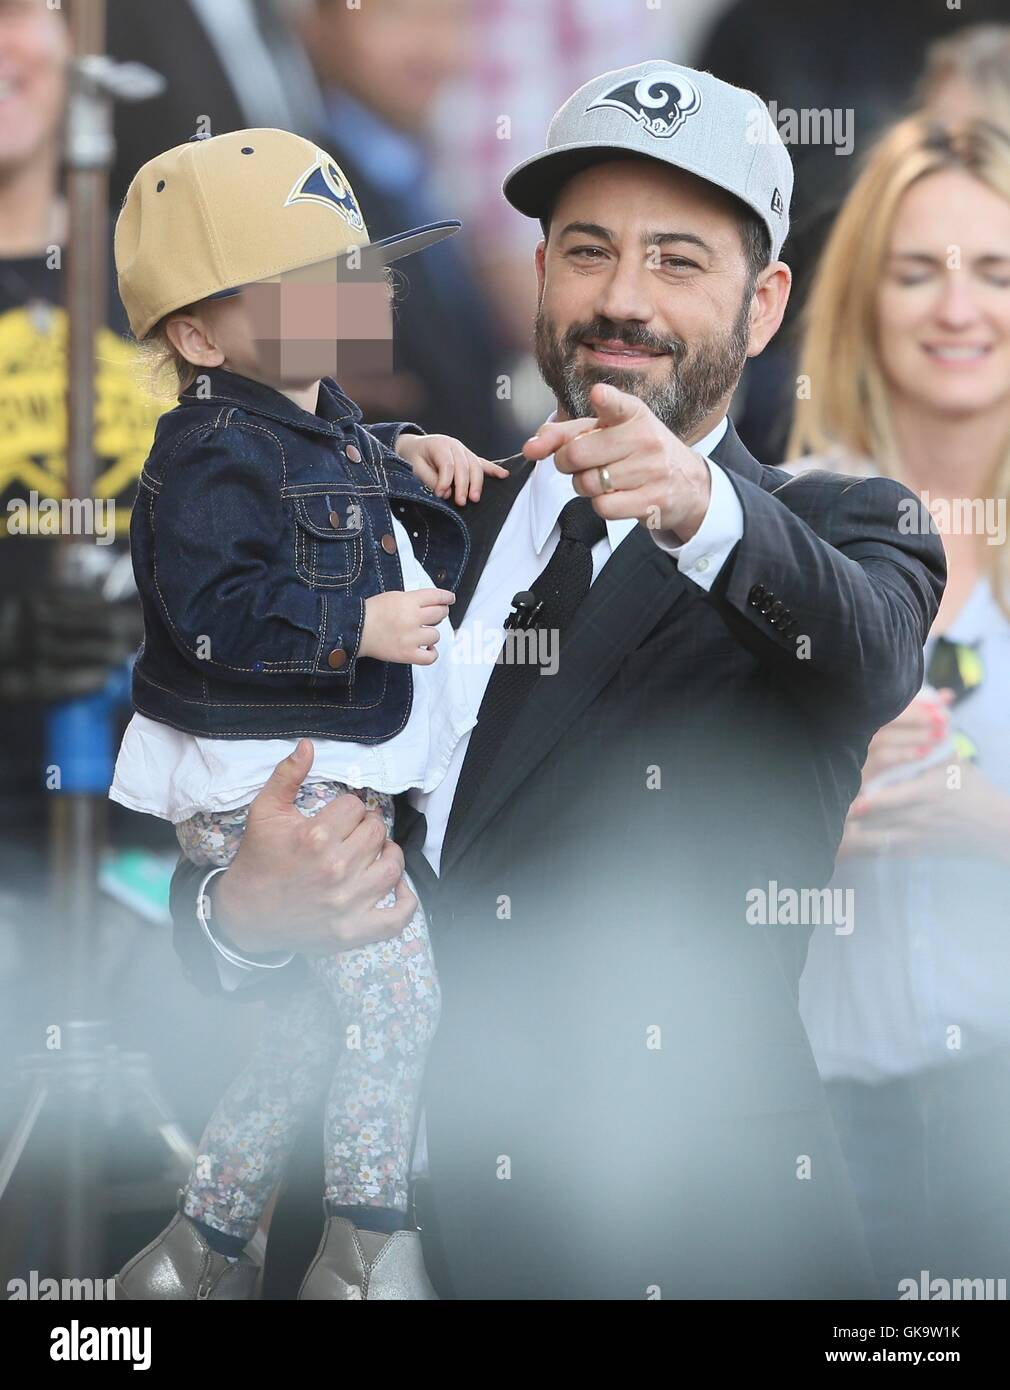 cf0c017ff4ba6 Jimmy Kimmel seen wearing the new LA Rams baseball caps with his daughter  Featuring  Jimmy Kimmel